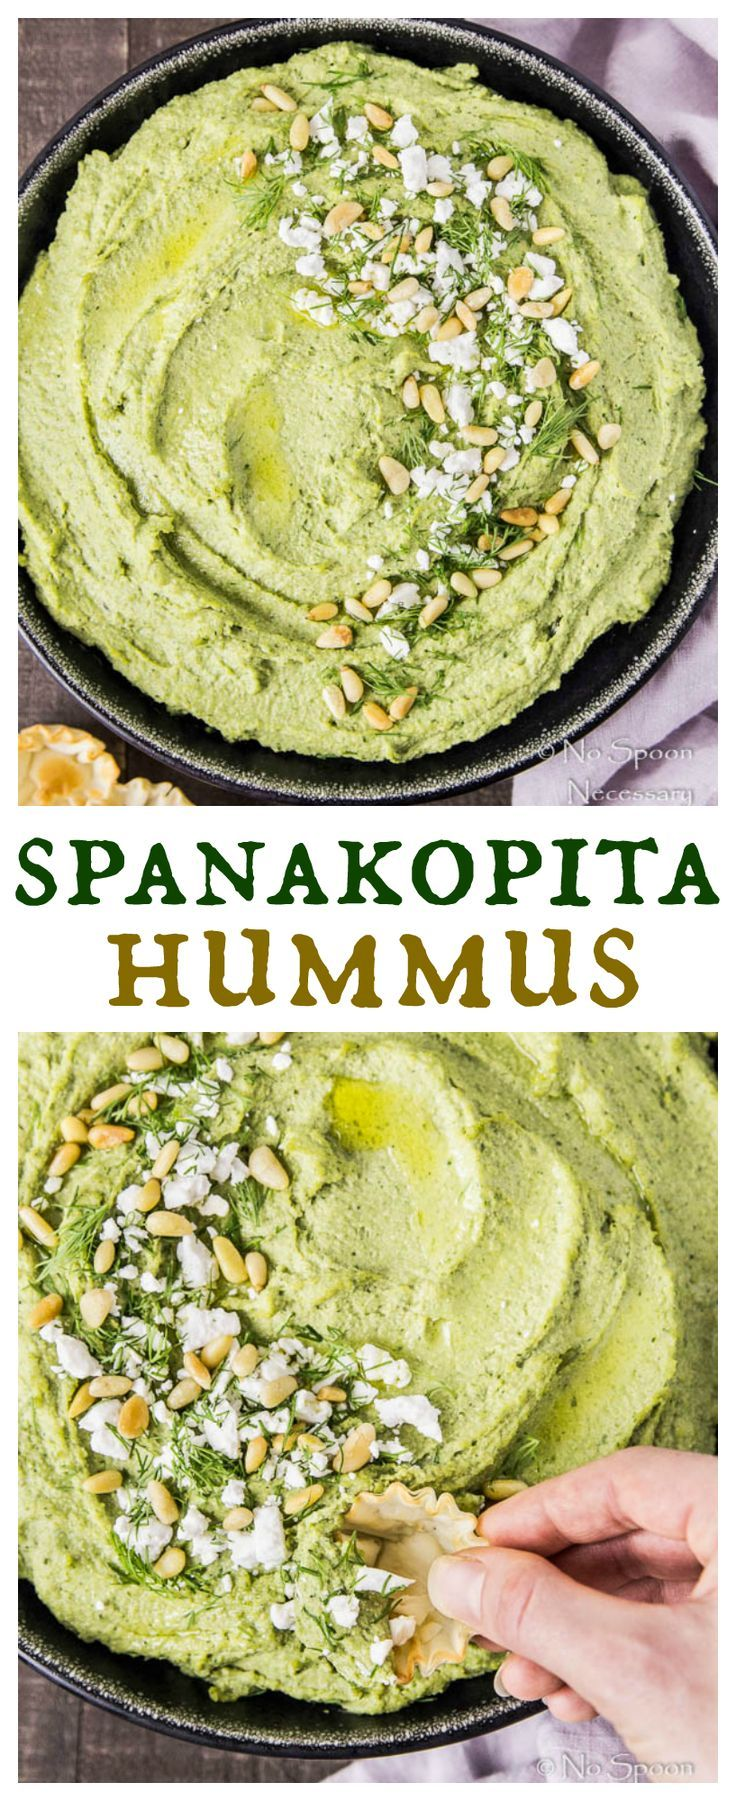 Spanakopita hummus all the traditional flavors of greek spinach spanakopita hummus all the traditional flavors of greek spinach feta pie turned healthy spinach recipeshealthy forumfinder Choice Image